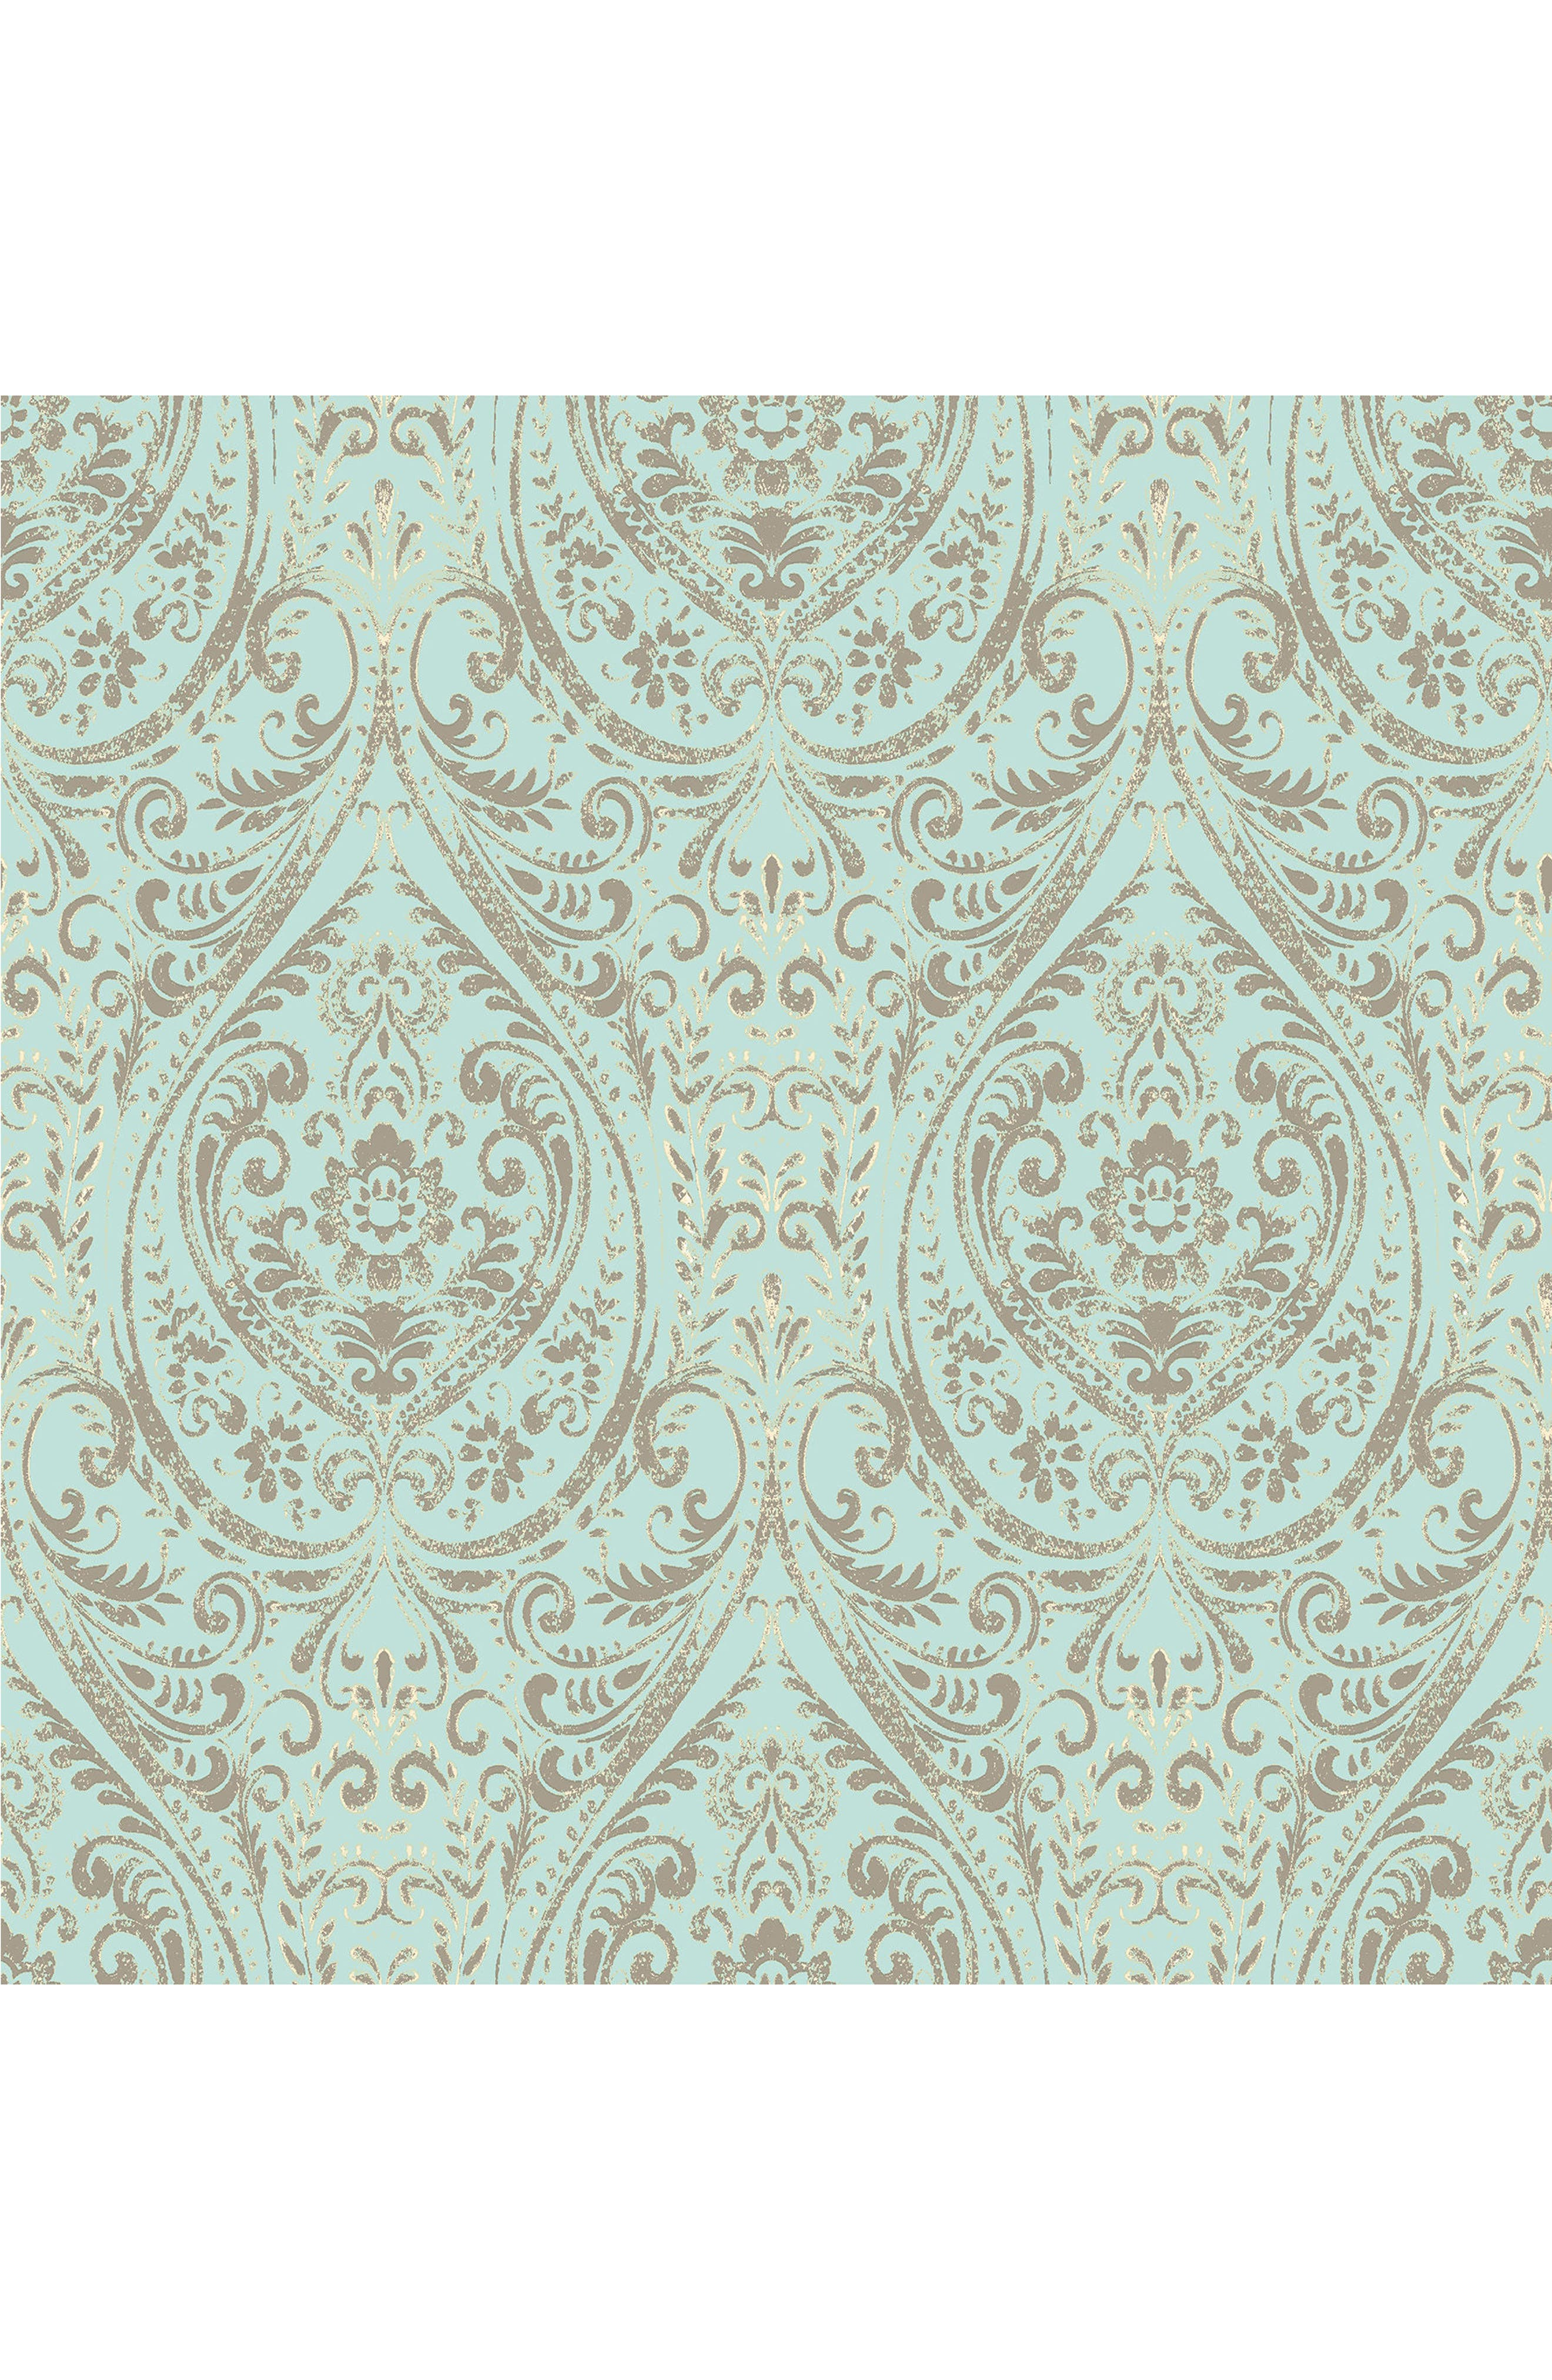 Nomad Damask  Peel & Stick Vinyl Wallpaper,                         Main,                         color, Blue